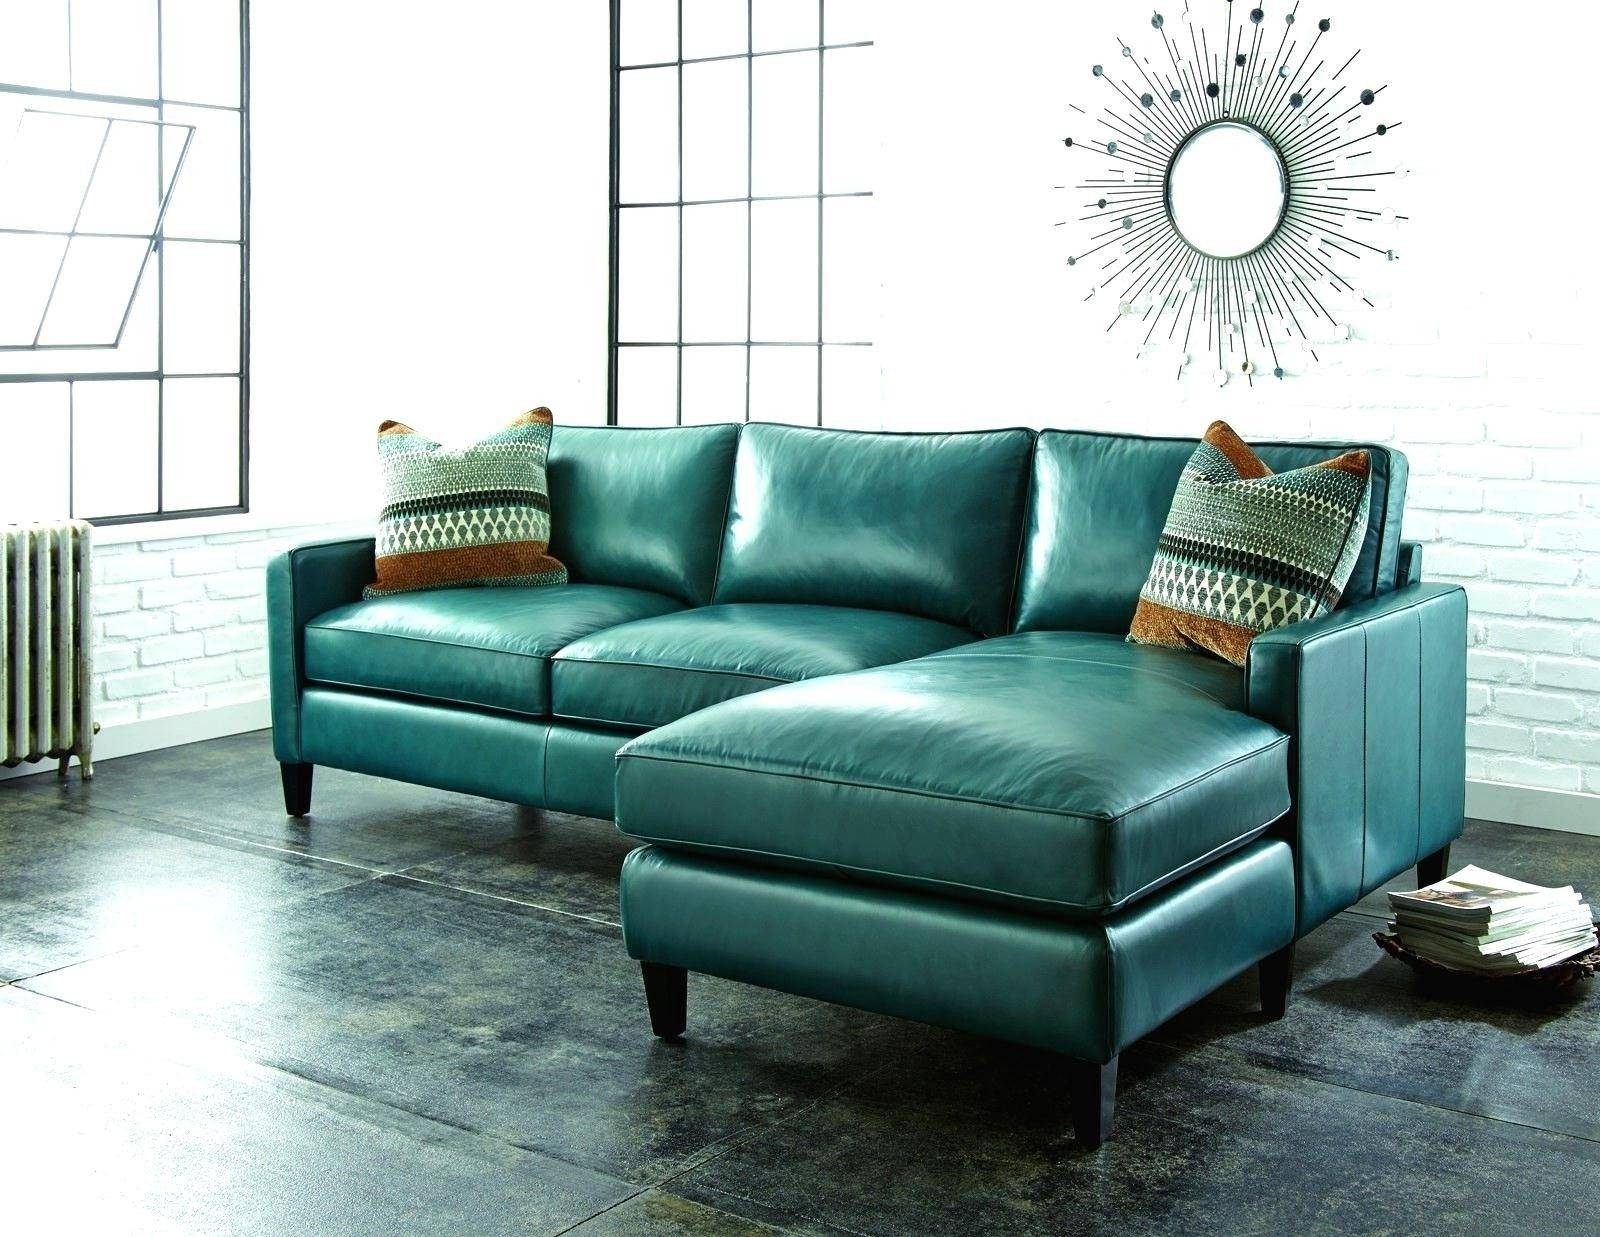 Best 15 of Green Leather Sectional Sofas